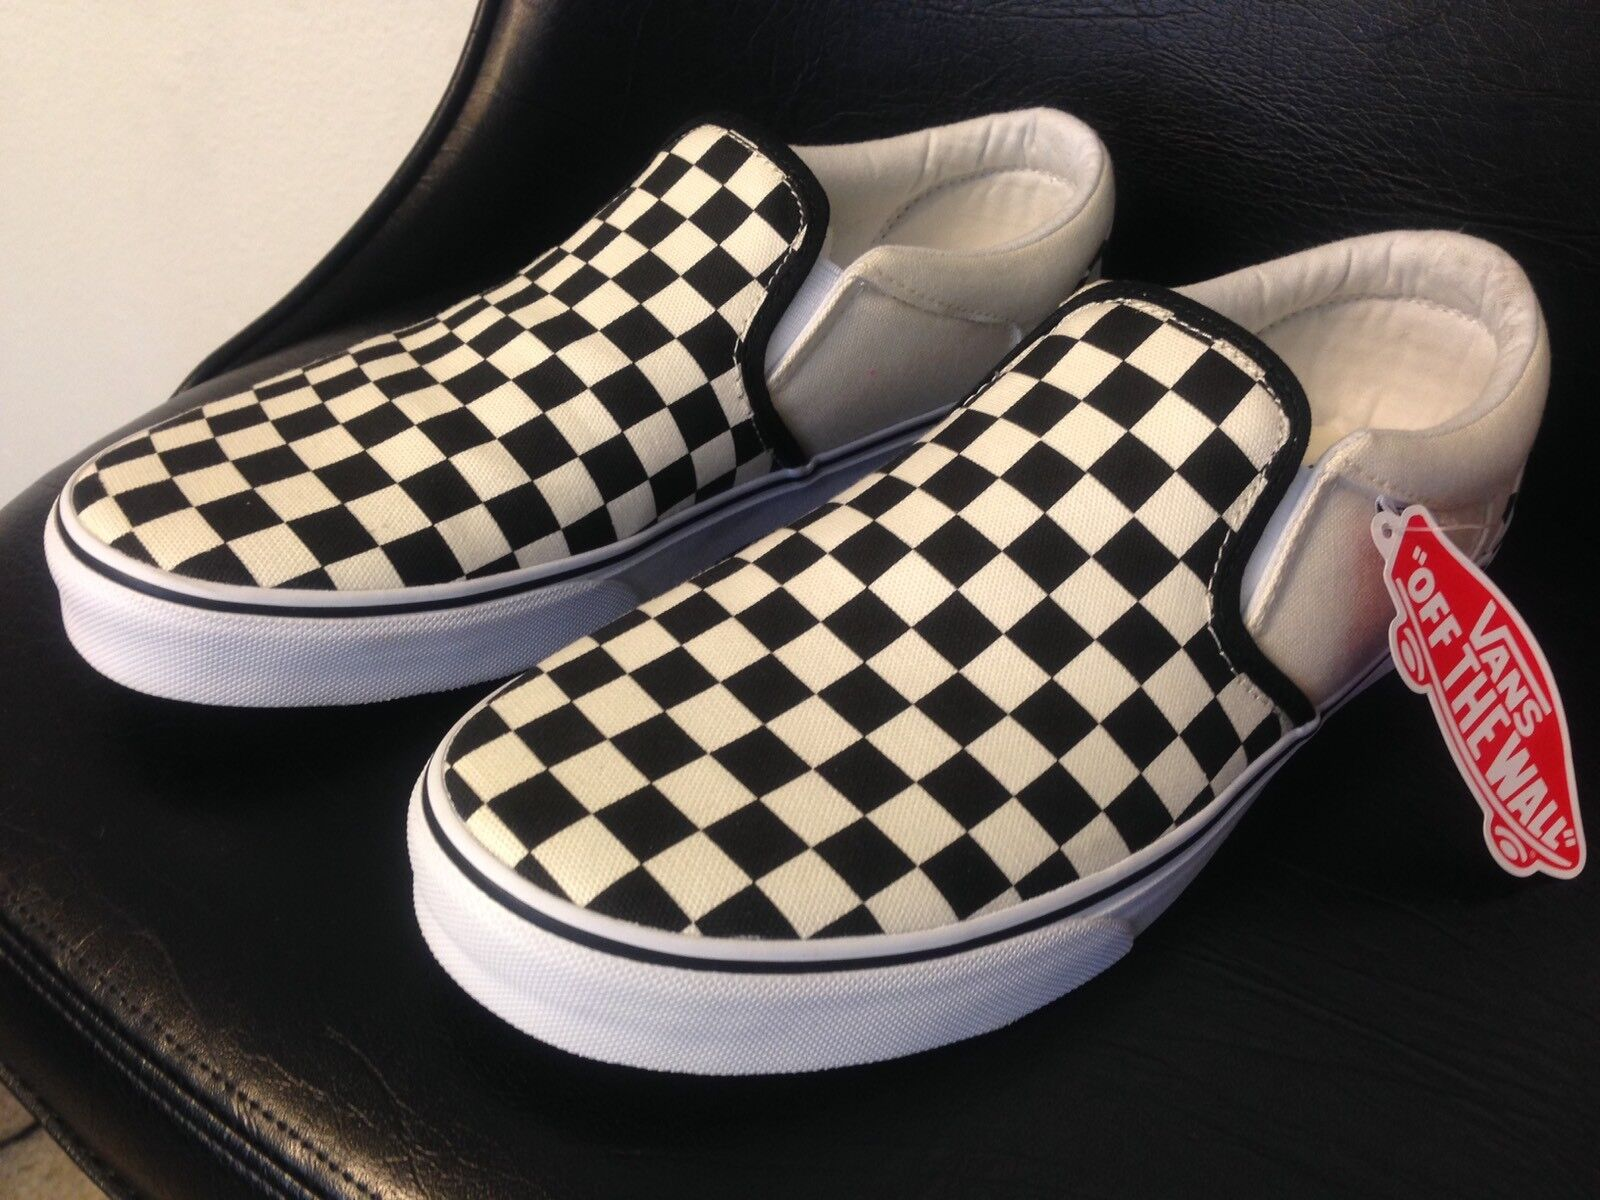 Vans CHECKERBOARD SLIP-ON Canvas BLACK/OFF Weiß CHECK  Canvas SLIP-ON Classic Schuhes  Uomo 10.5 479890